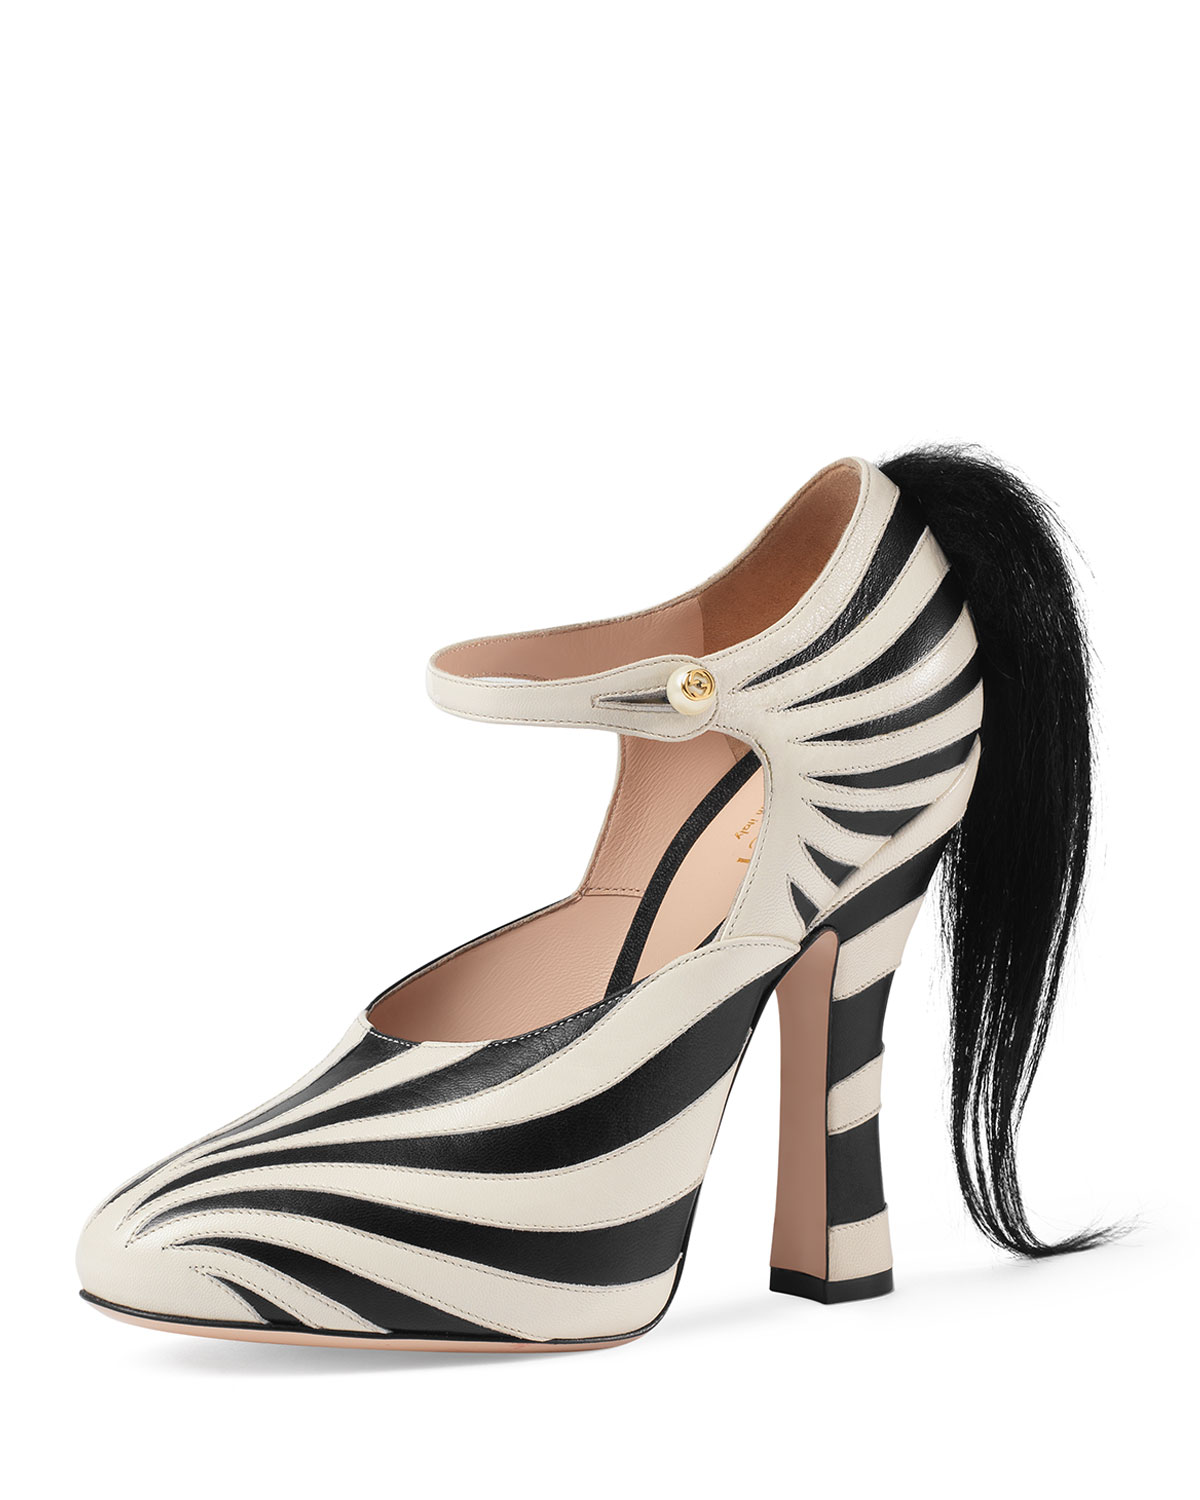 Lesley Zebra-Print Mary Jane Pump, Black/White